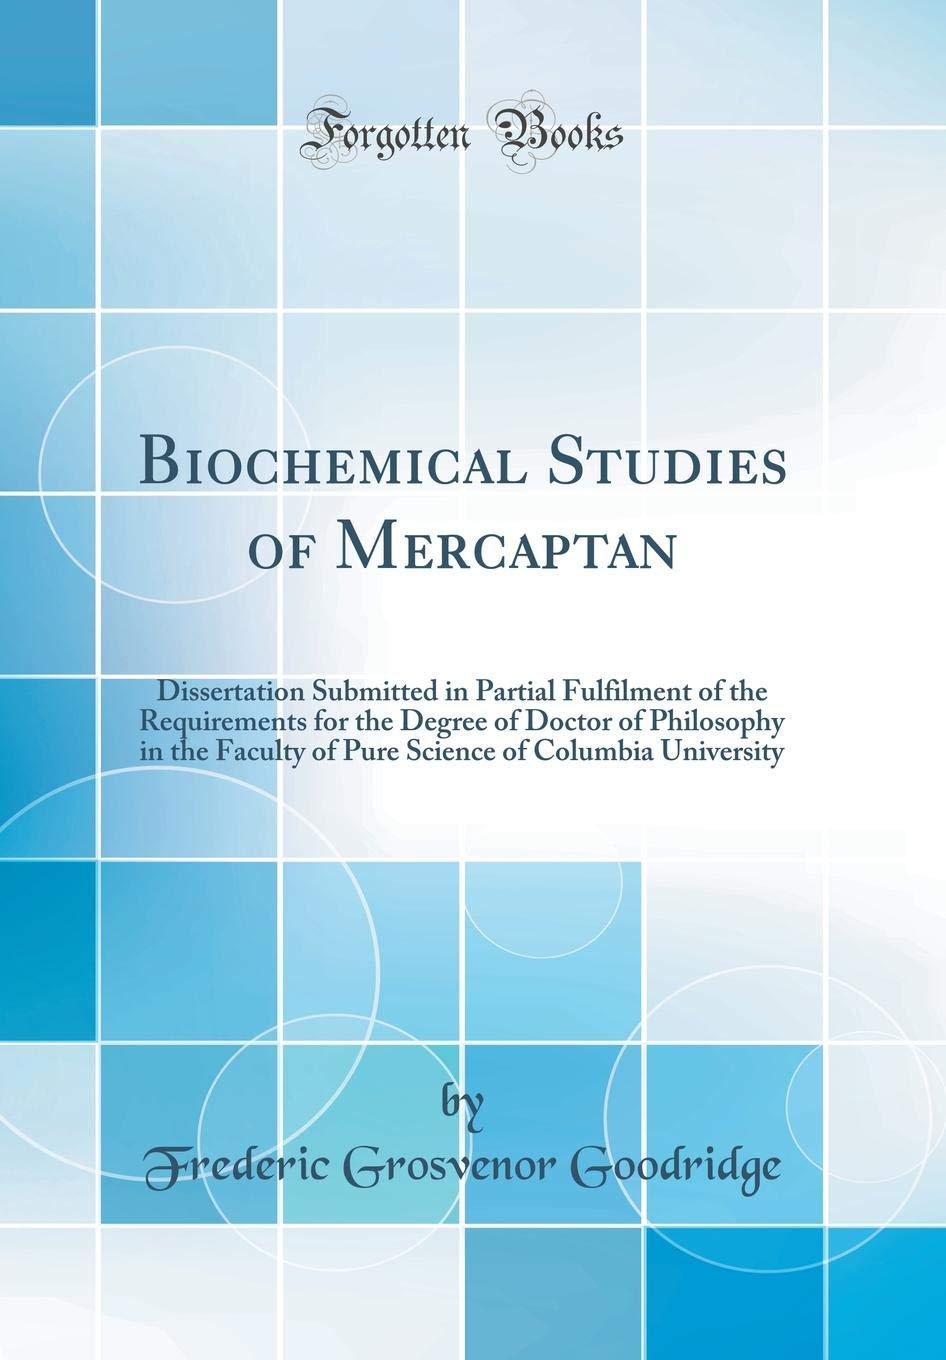 Biochemical Studies of Mercaptan: Dissertation Submitted in Partial Fulfilment of the Requirements for the Degree of Doctor of Philosophy in the ... of Columbia University (Classic Reprint) pdf